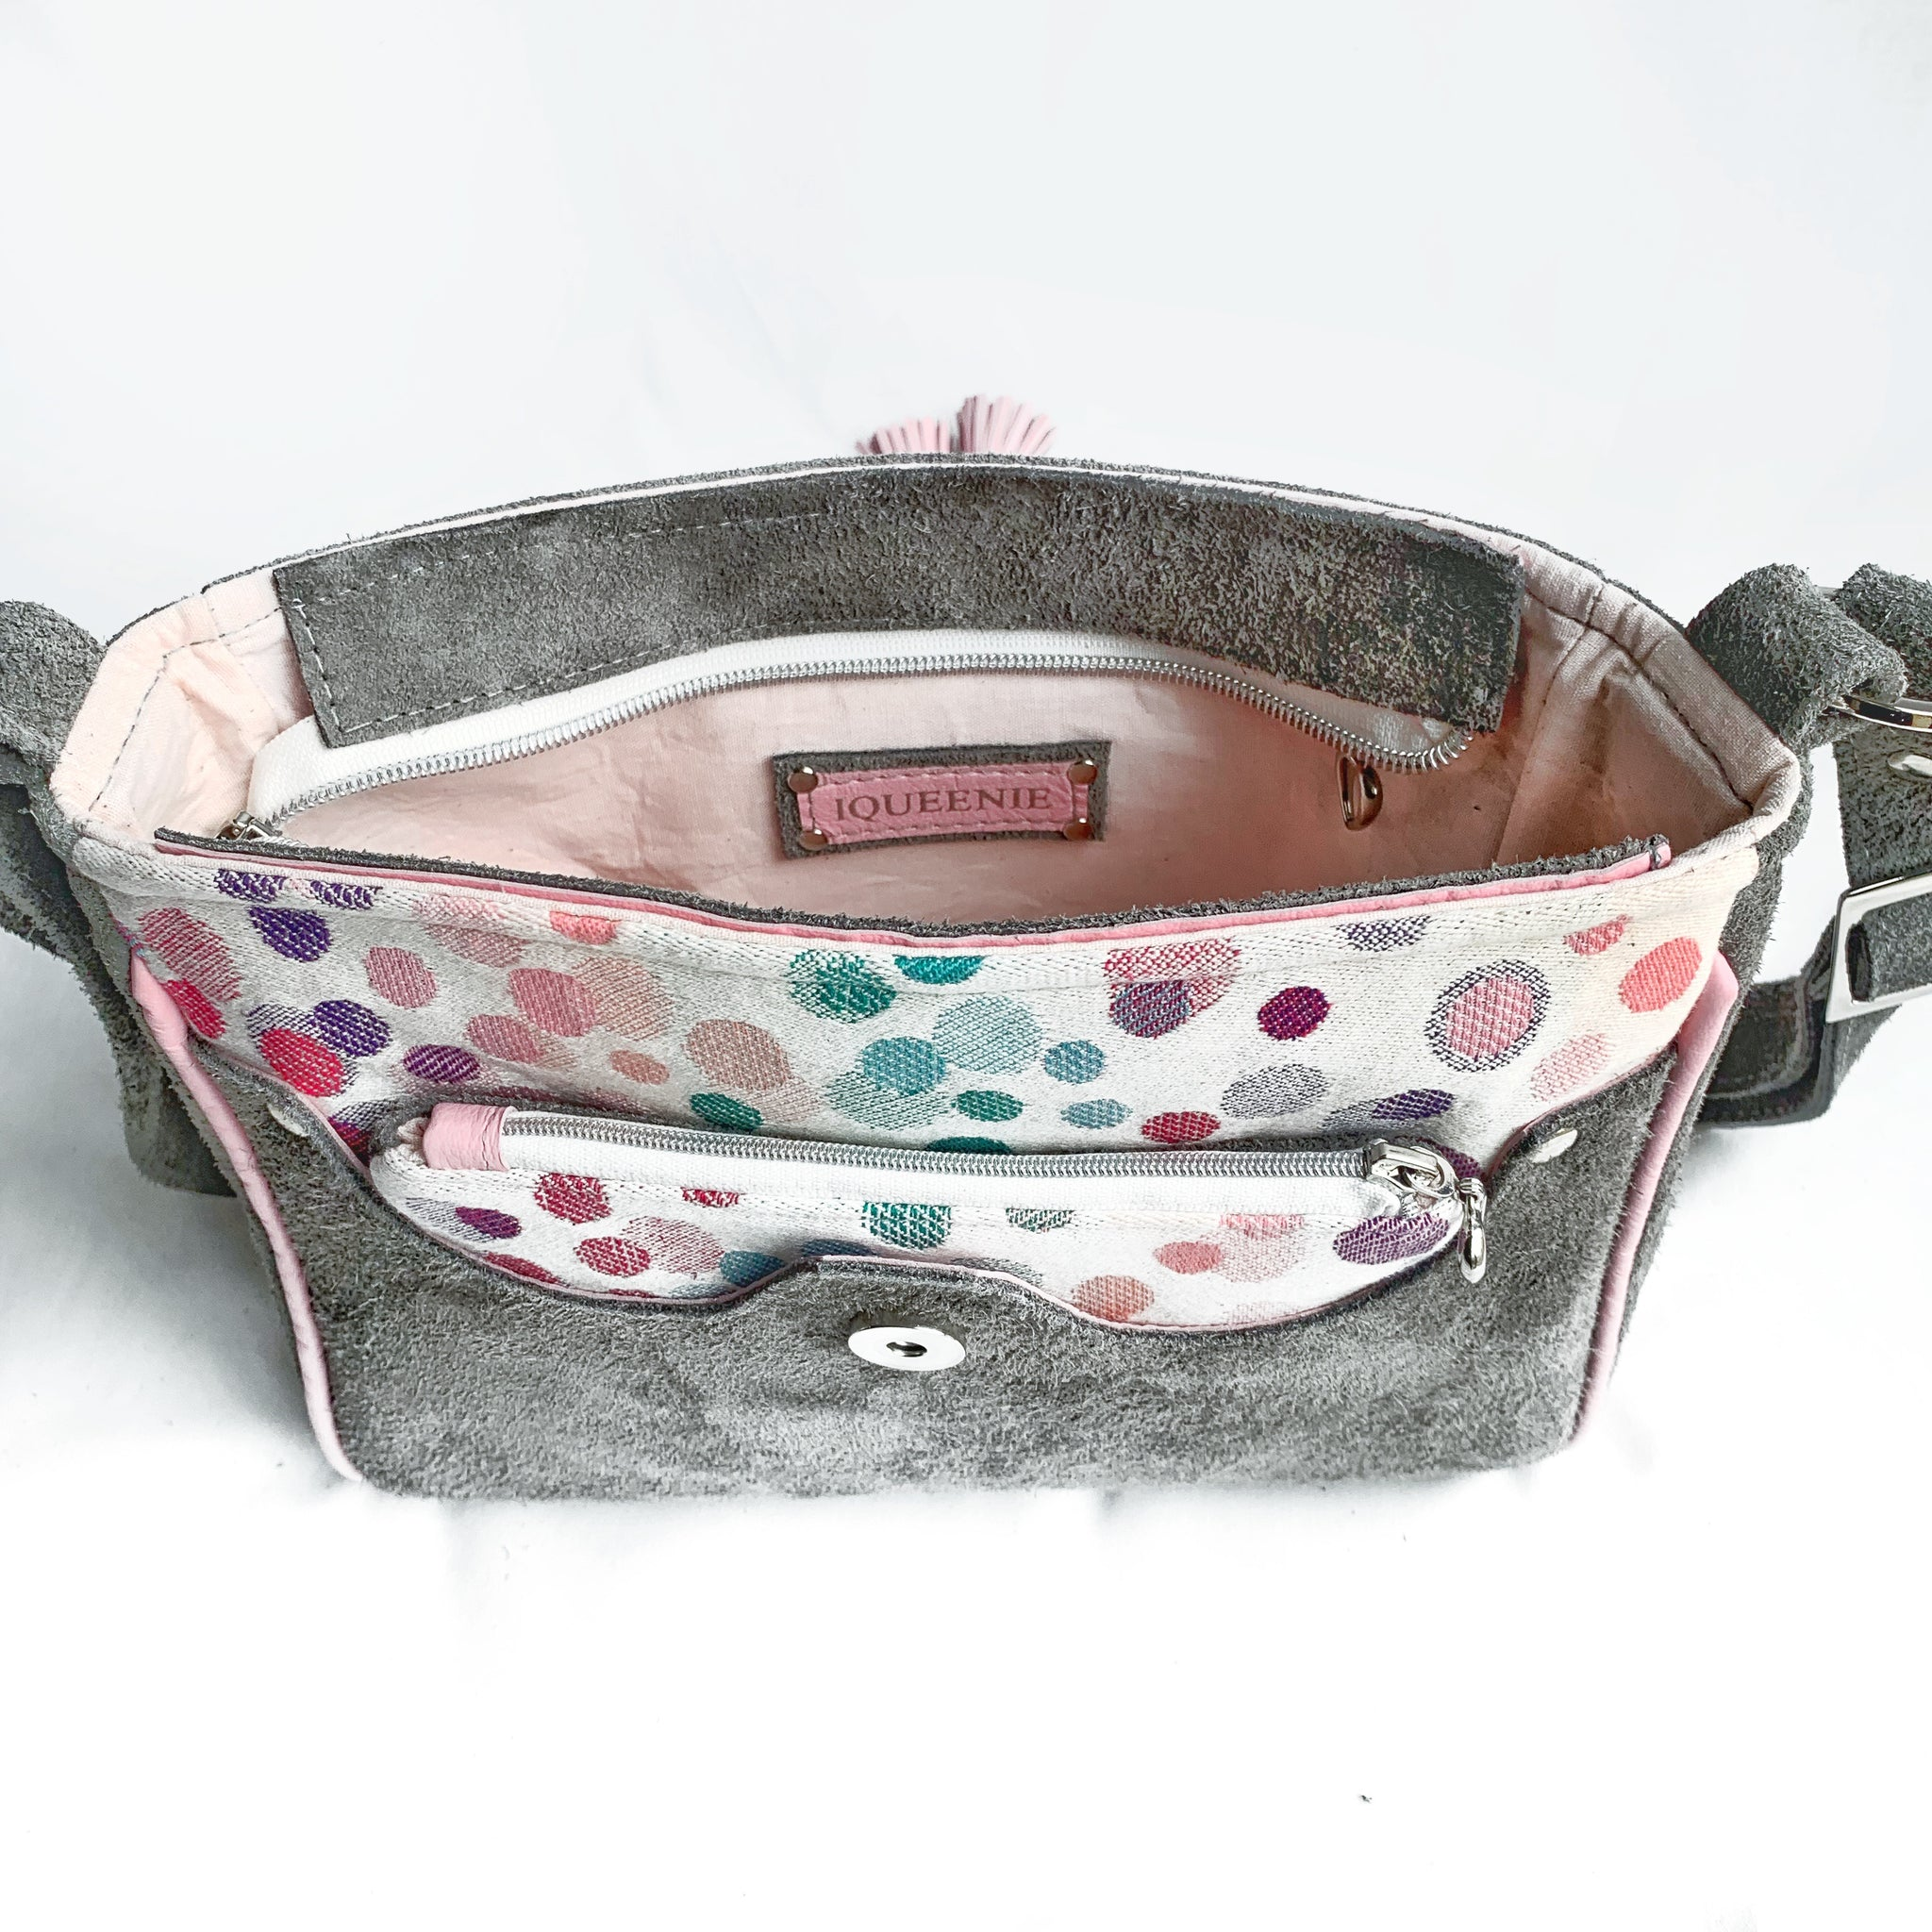 Forget me not sling bag